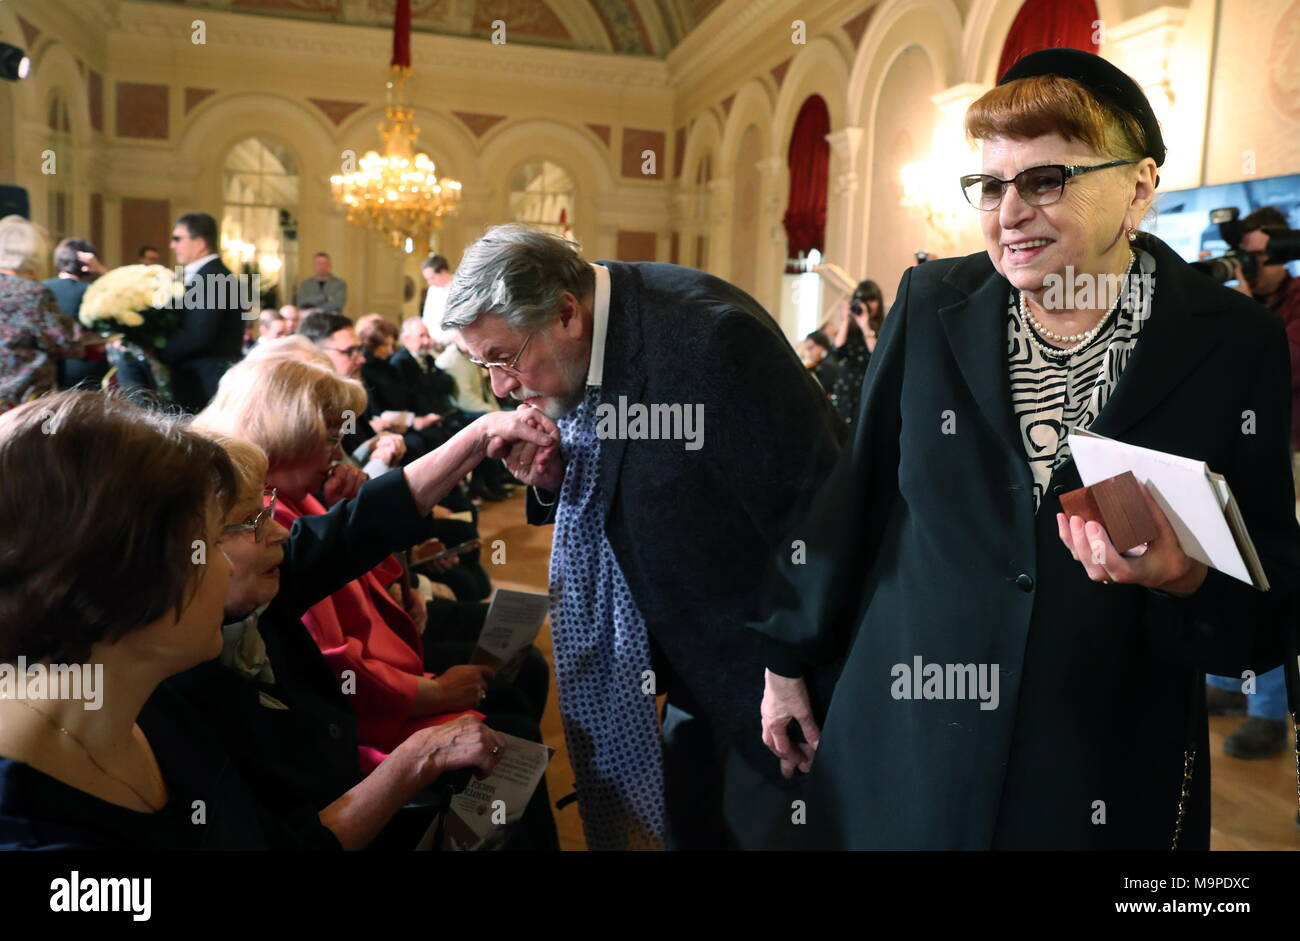 Alexander Shirvindt was hospitalized in Moscow due to heart problems 01/22/2016 50